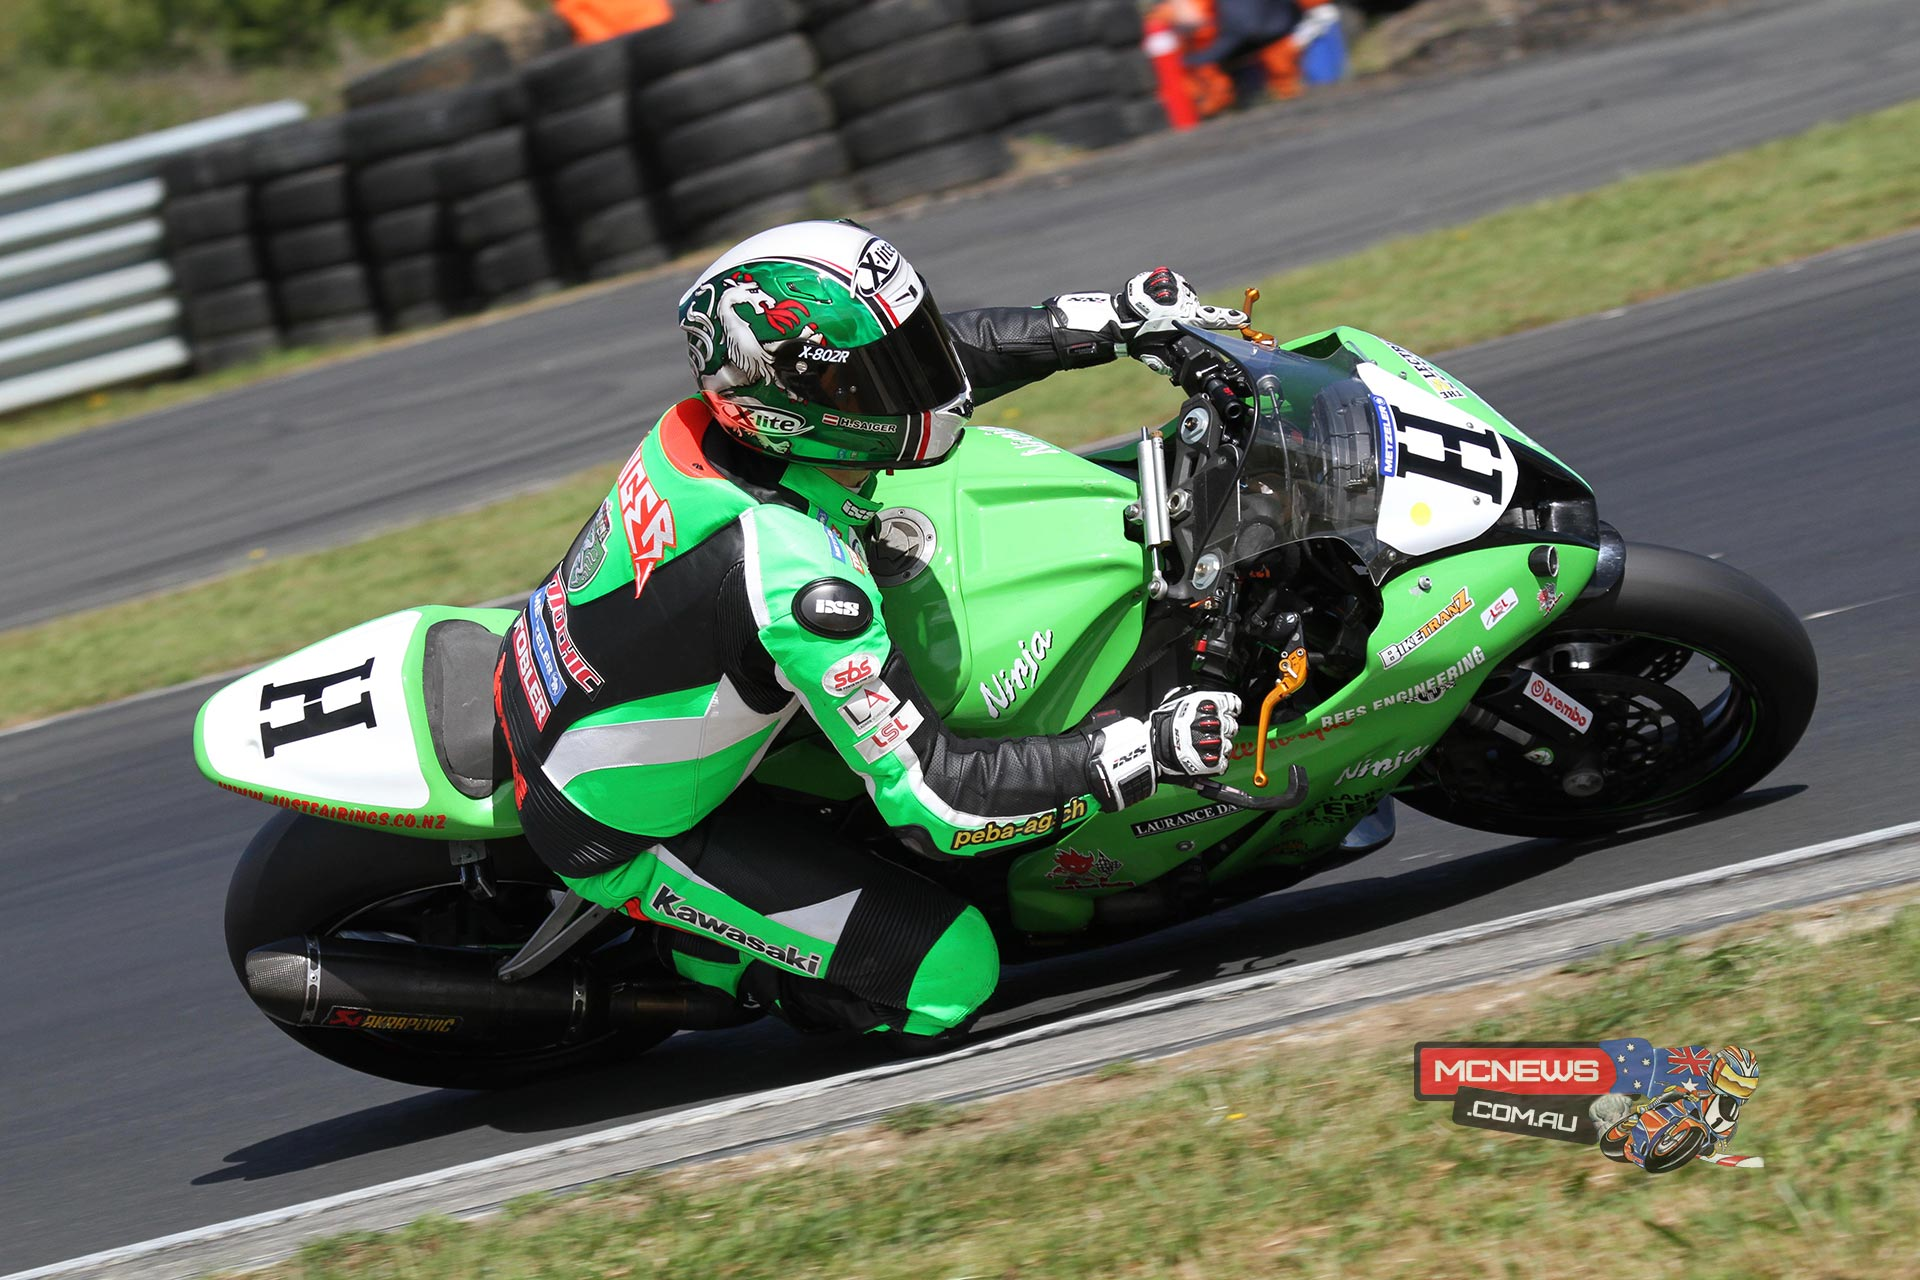 Horst Saiger in winning form on his Kawasaki ZX-10R